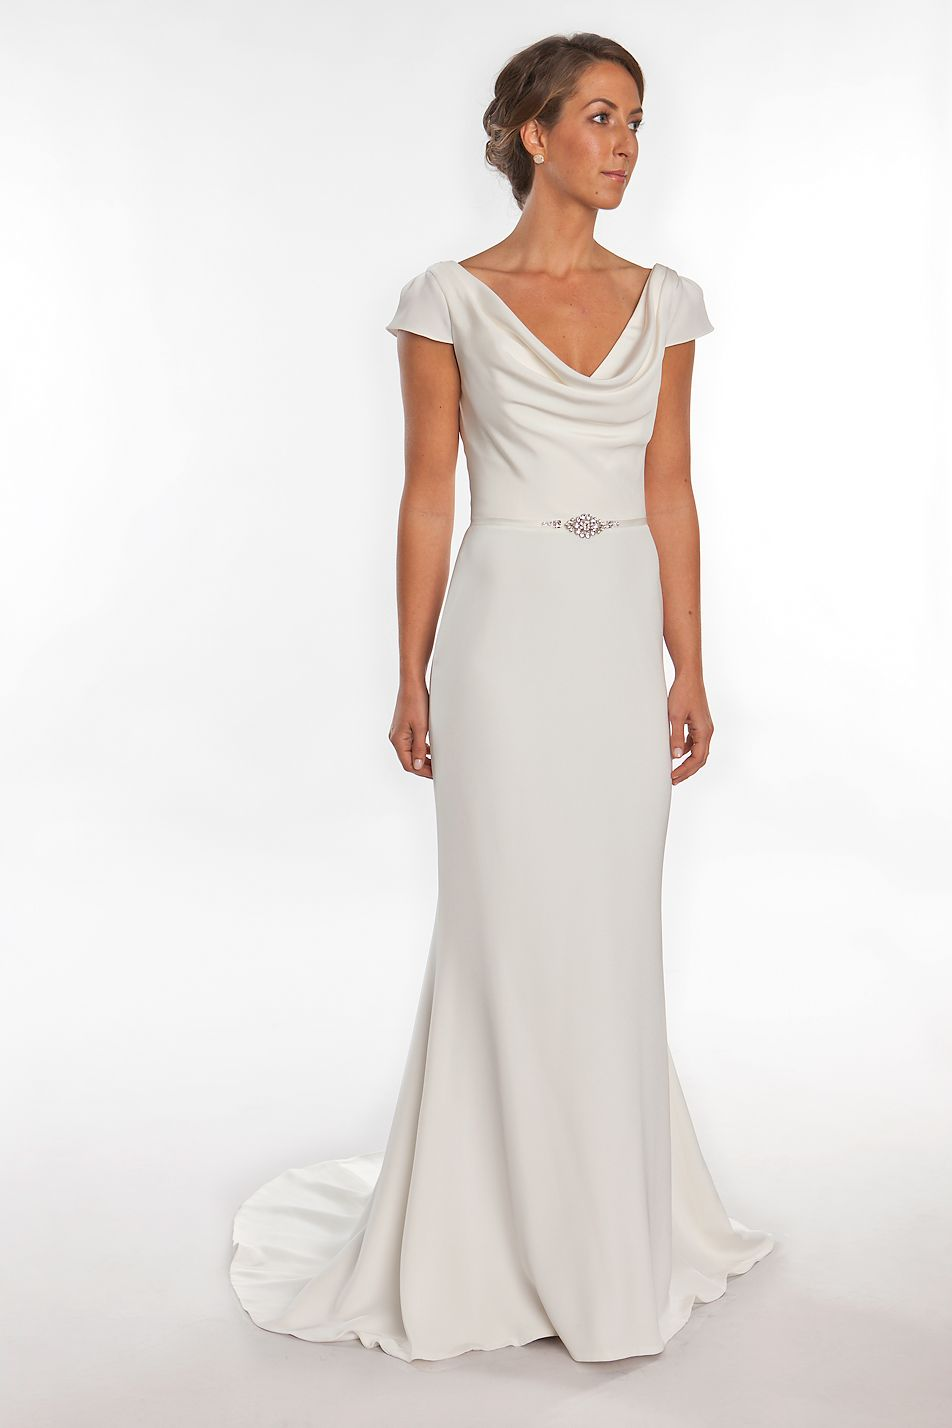 Charlotte - cowl neck wedding dress with cap sleeves by Trish Lee ...